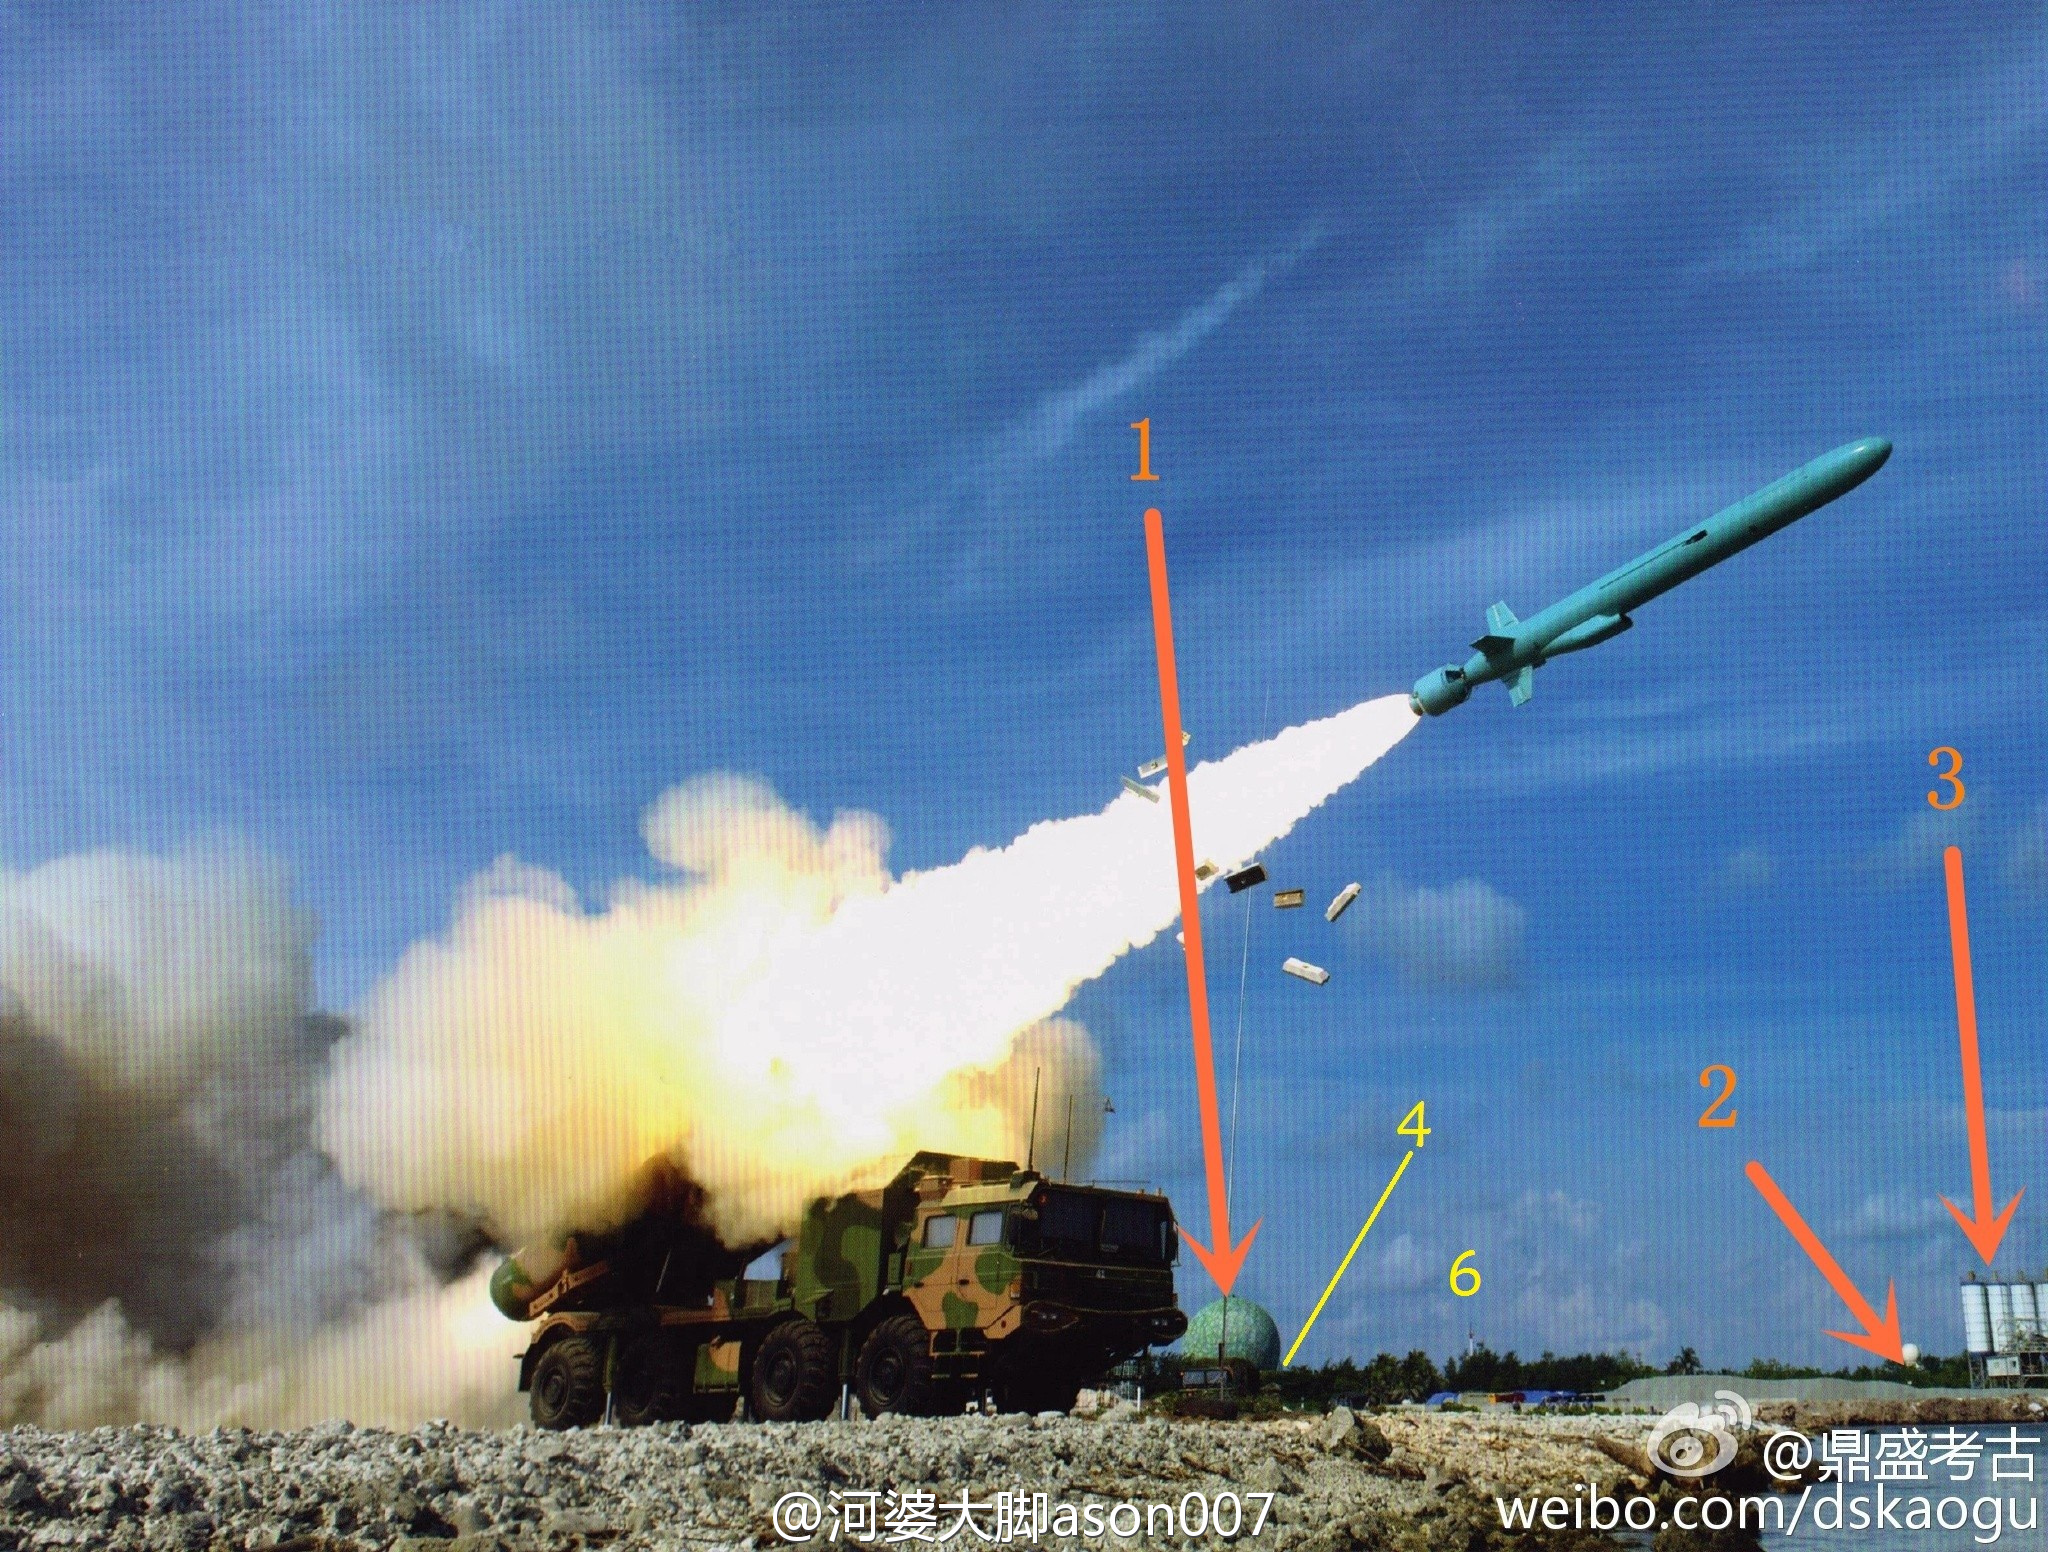 A People's Liberation Army Y-62 missile launch on Woody Island that circulated on the Chinese language Internet last week via aviation site Alert5.